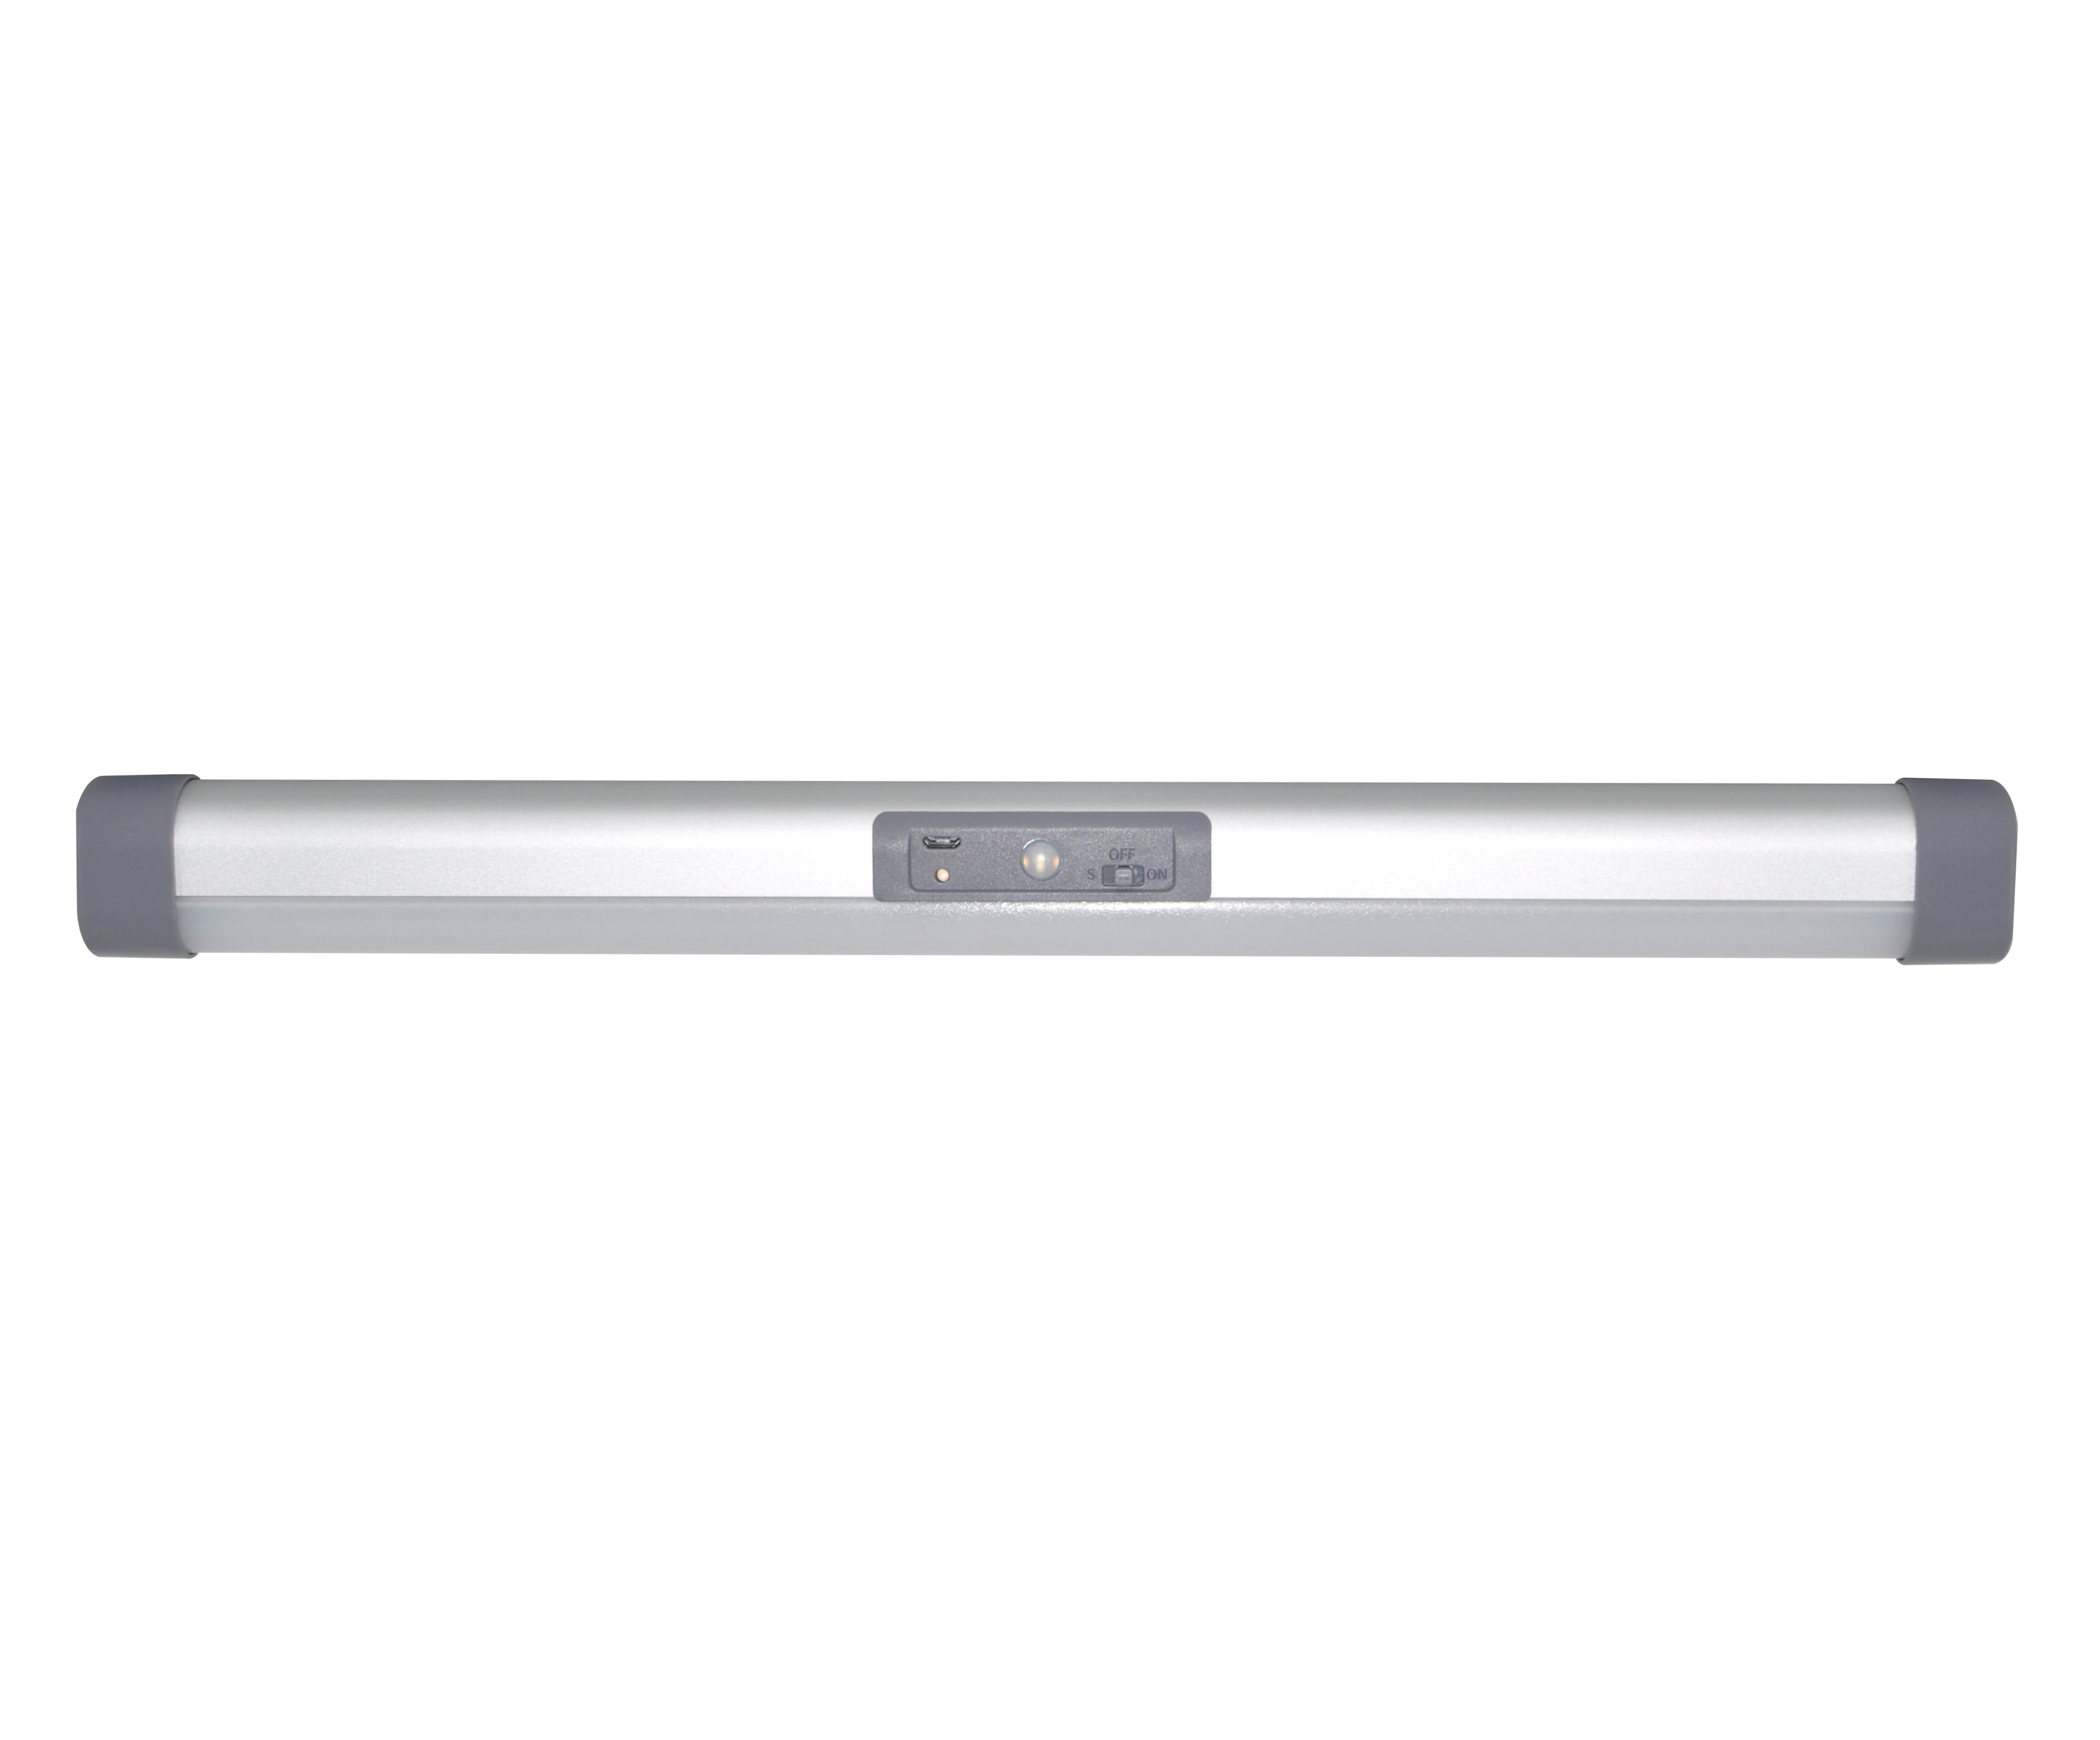 Sensor Wardrobe Light